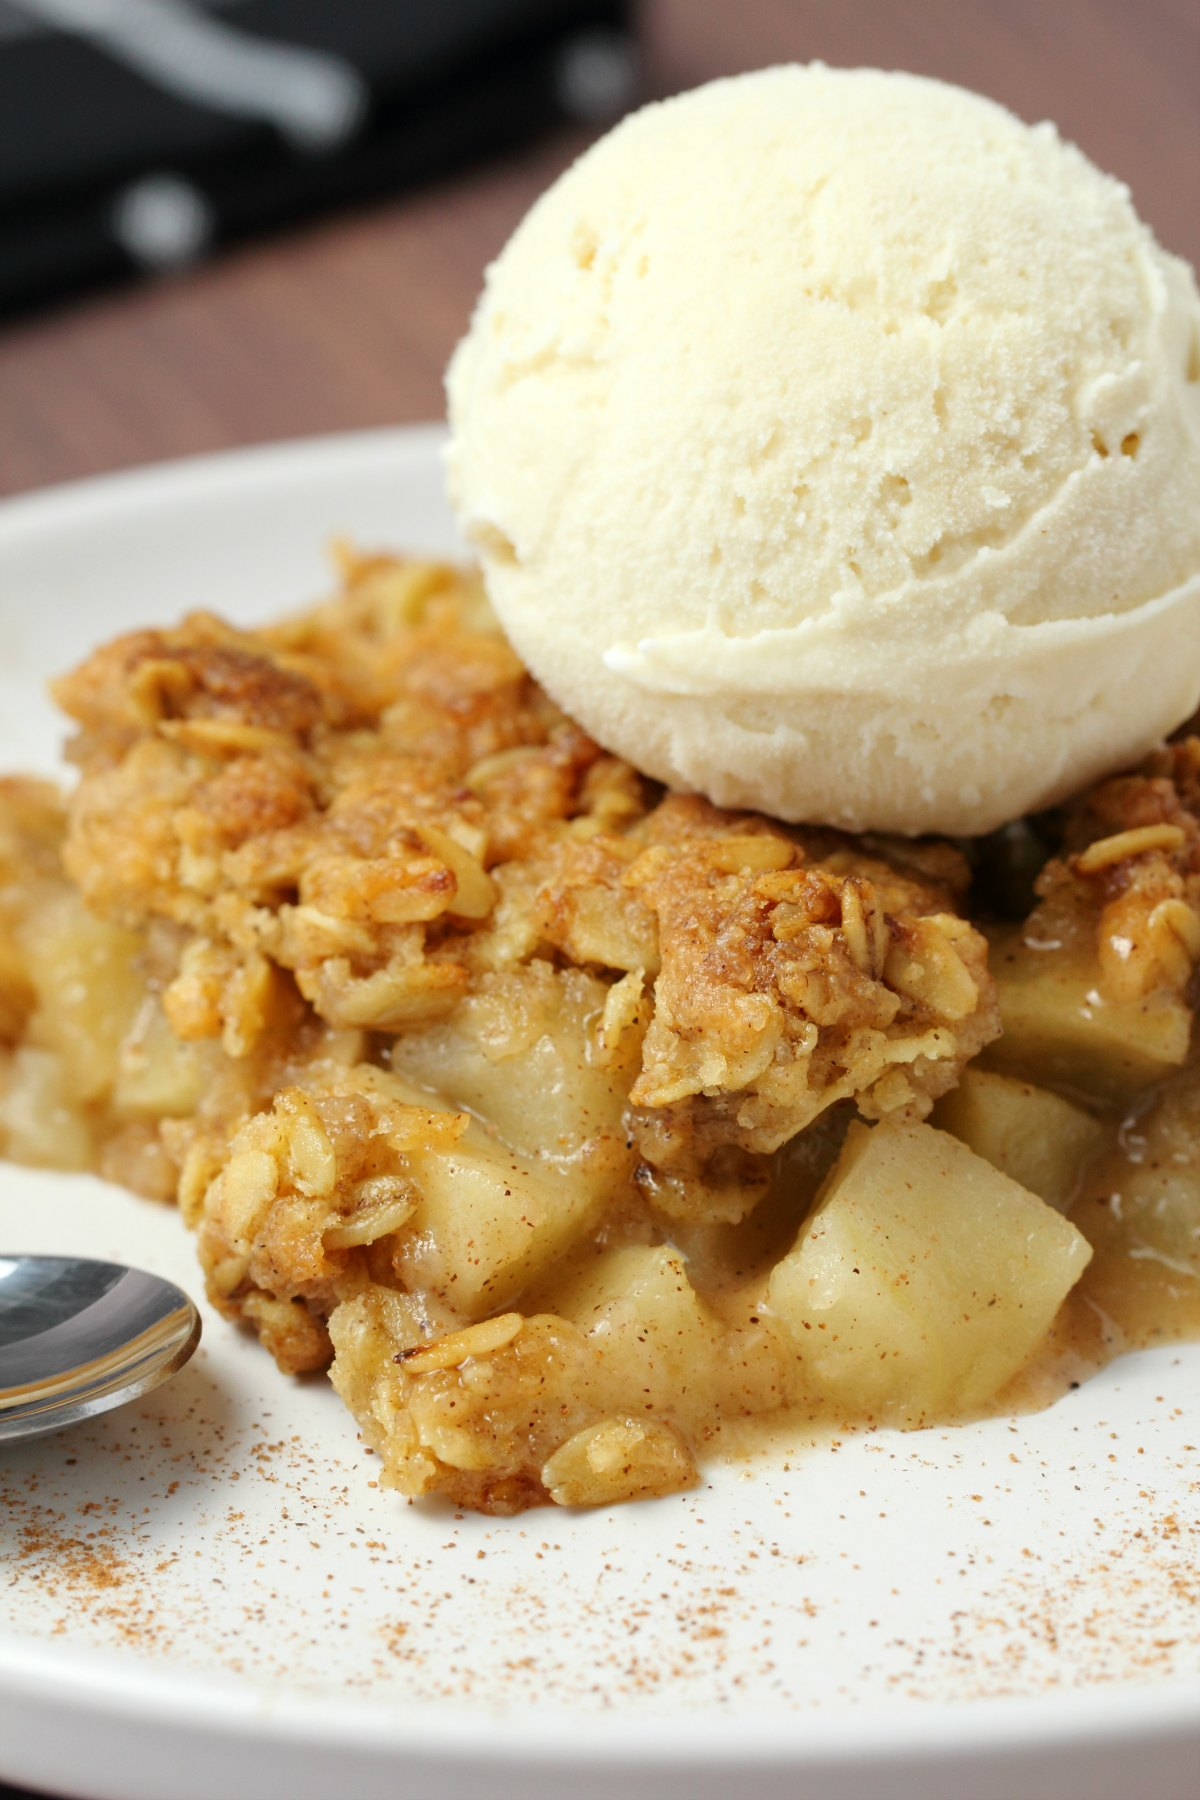 A slice of vegan apple crisp topped with vegan vanilla ice cream on a white plate.